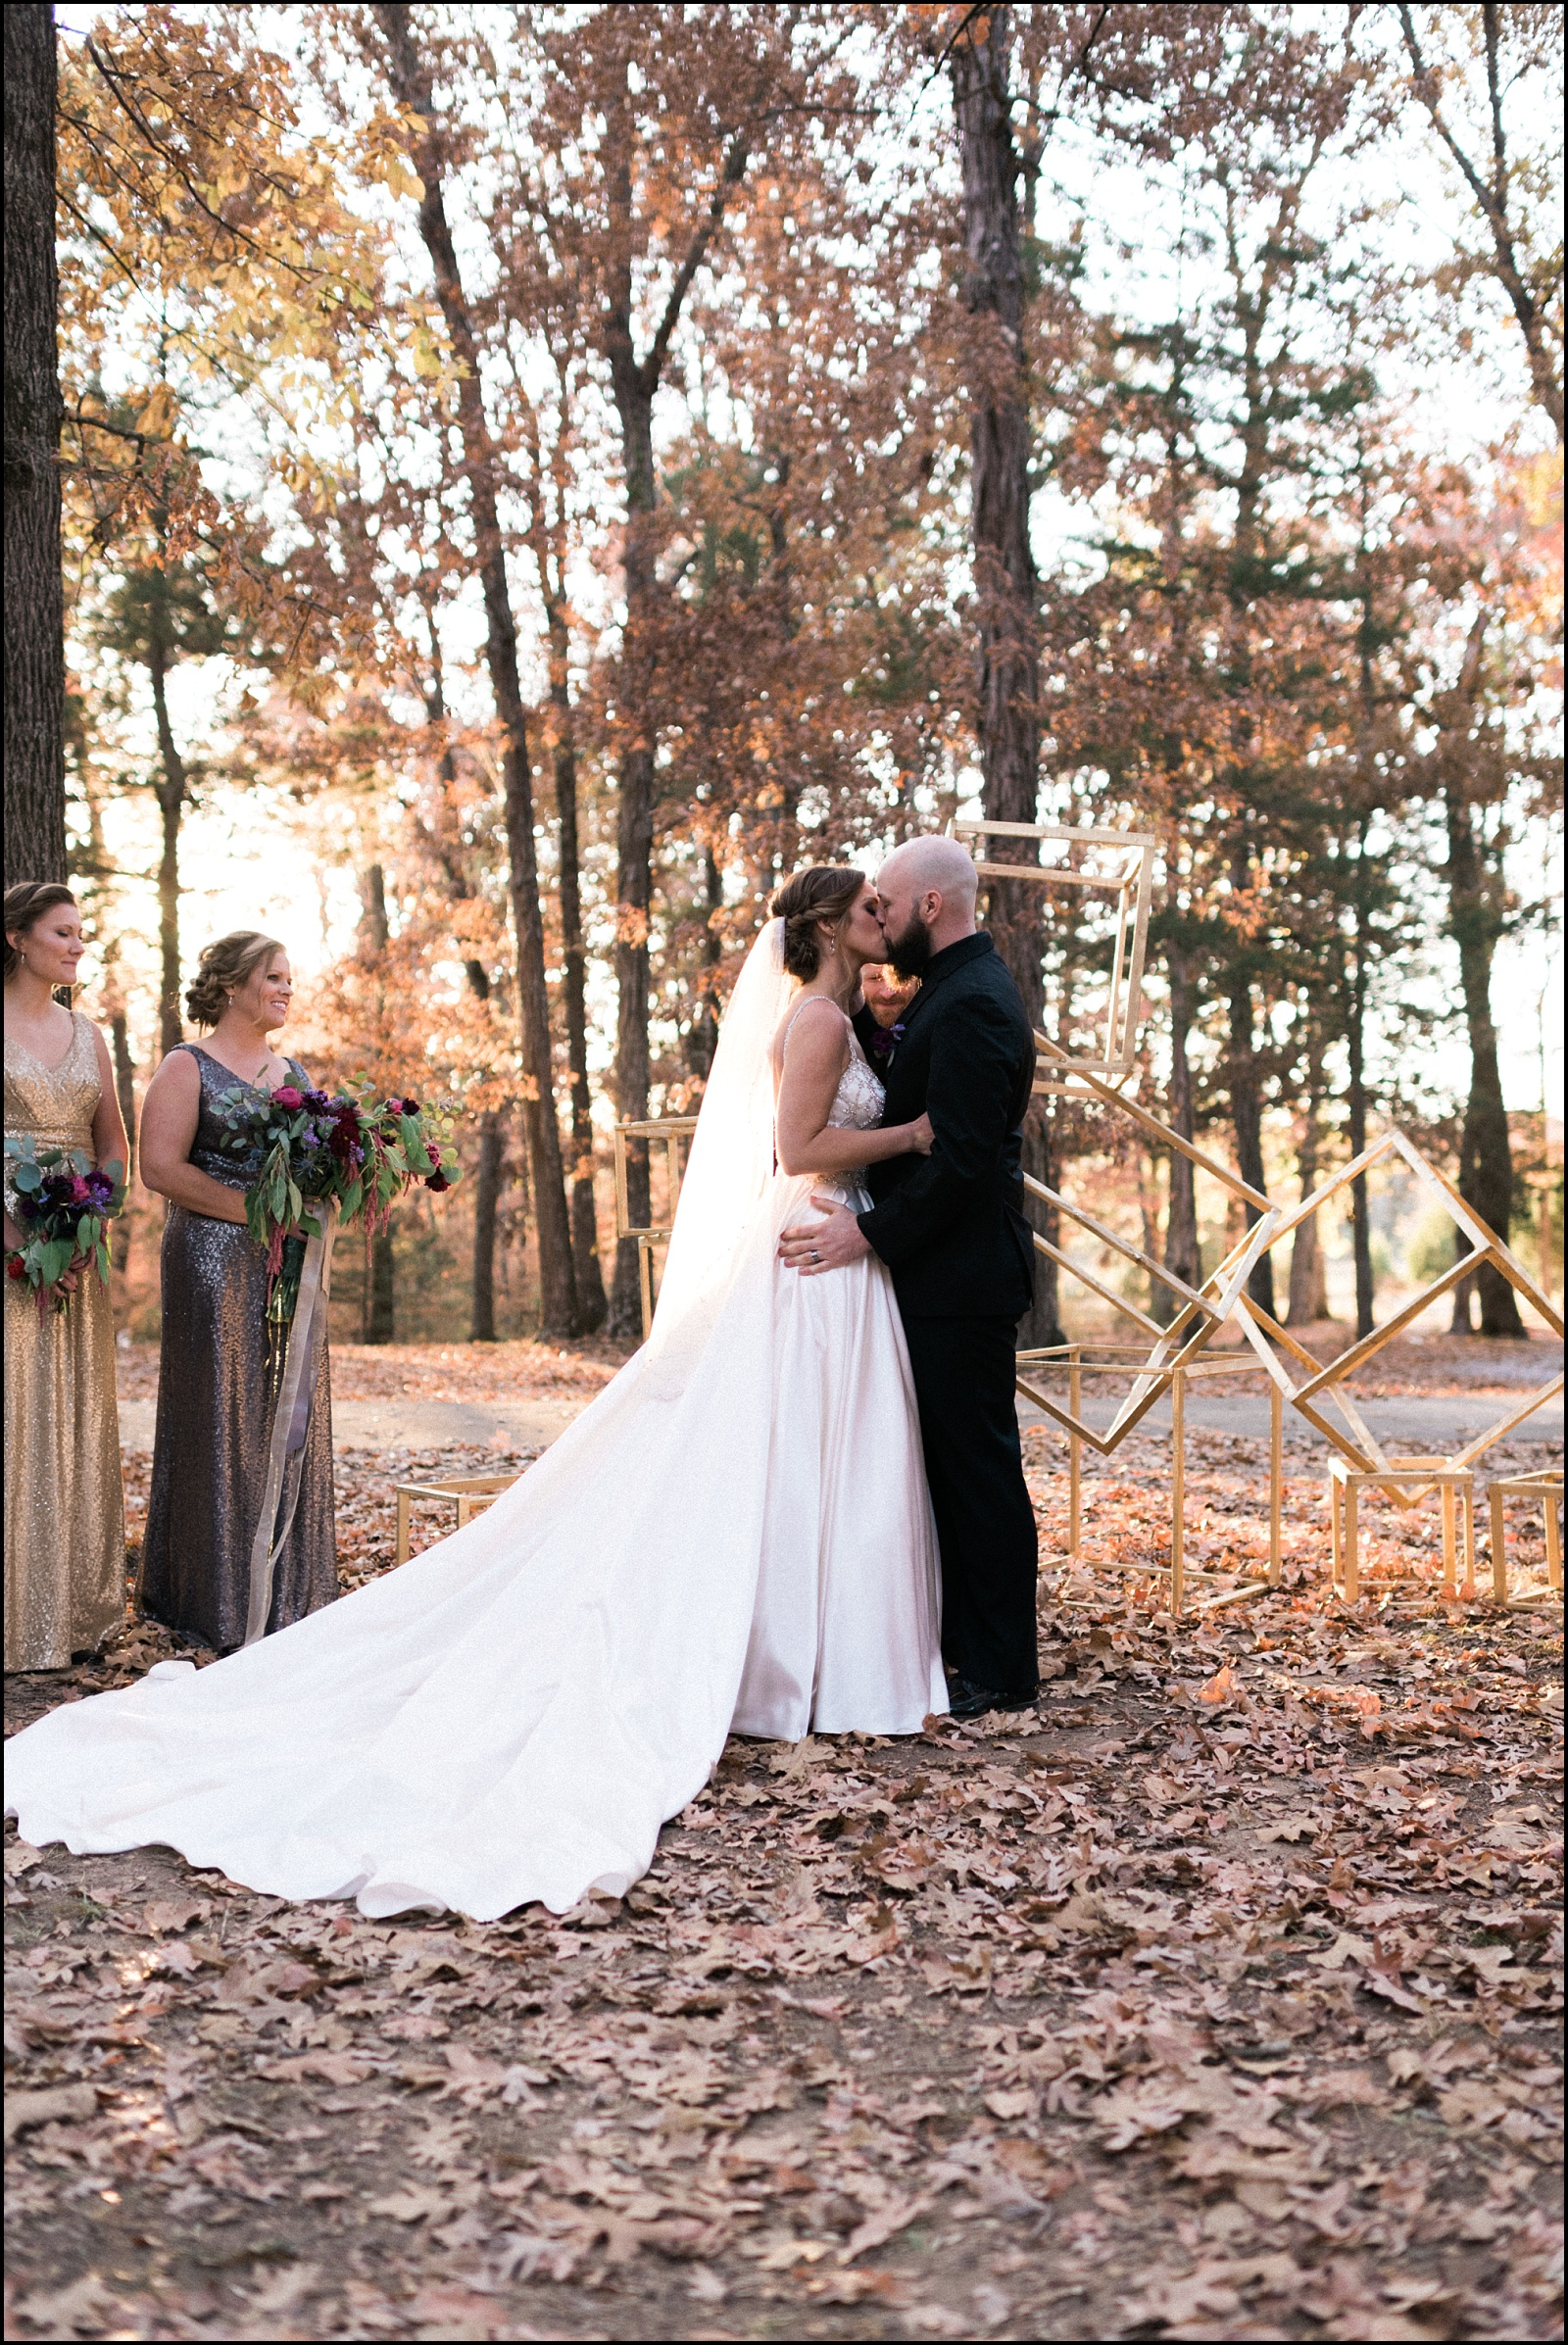 Fist kiss at ceremony at outdoor fall wedding in Nashville